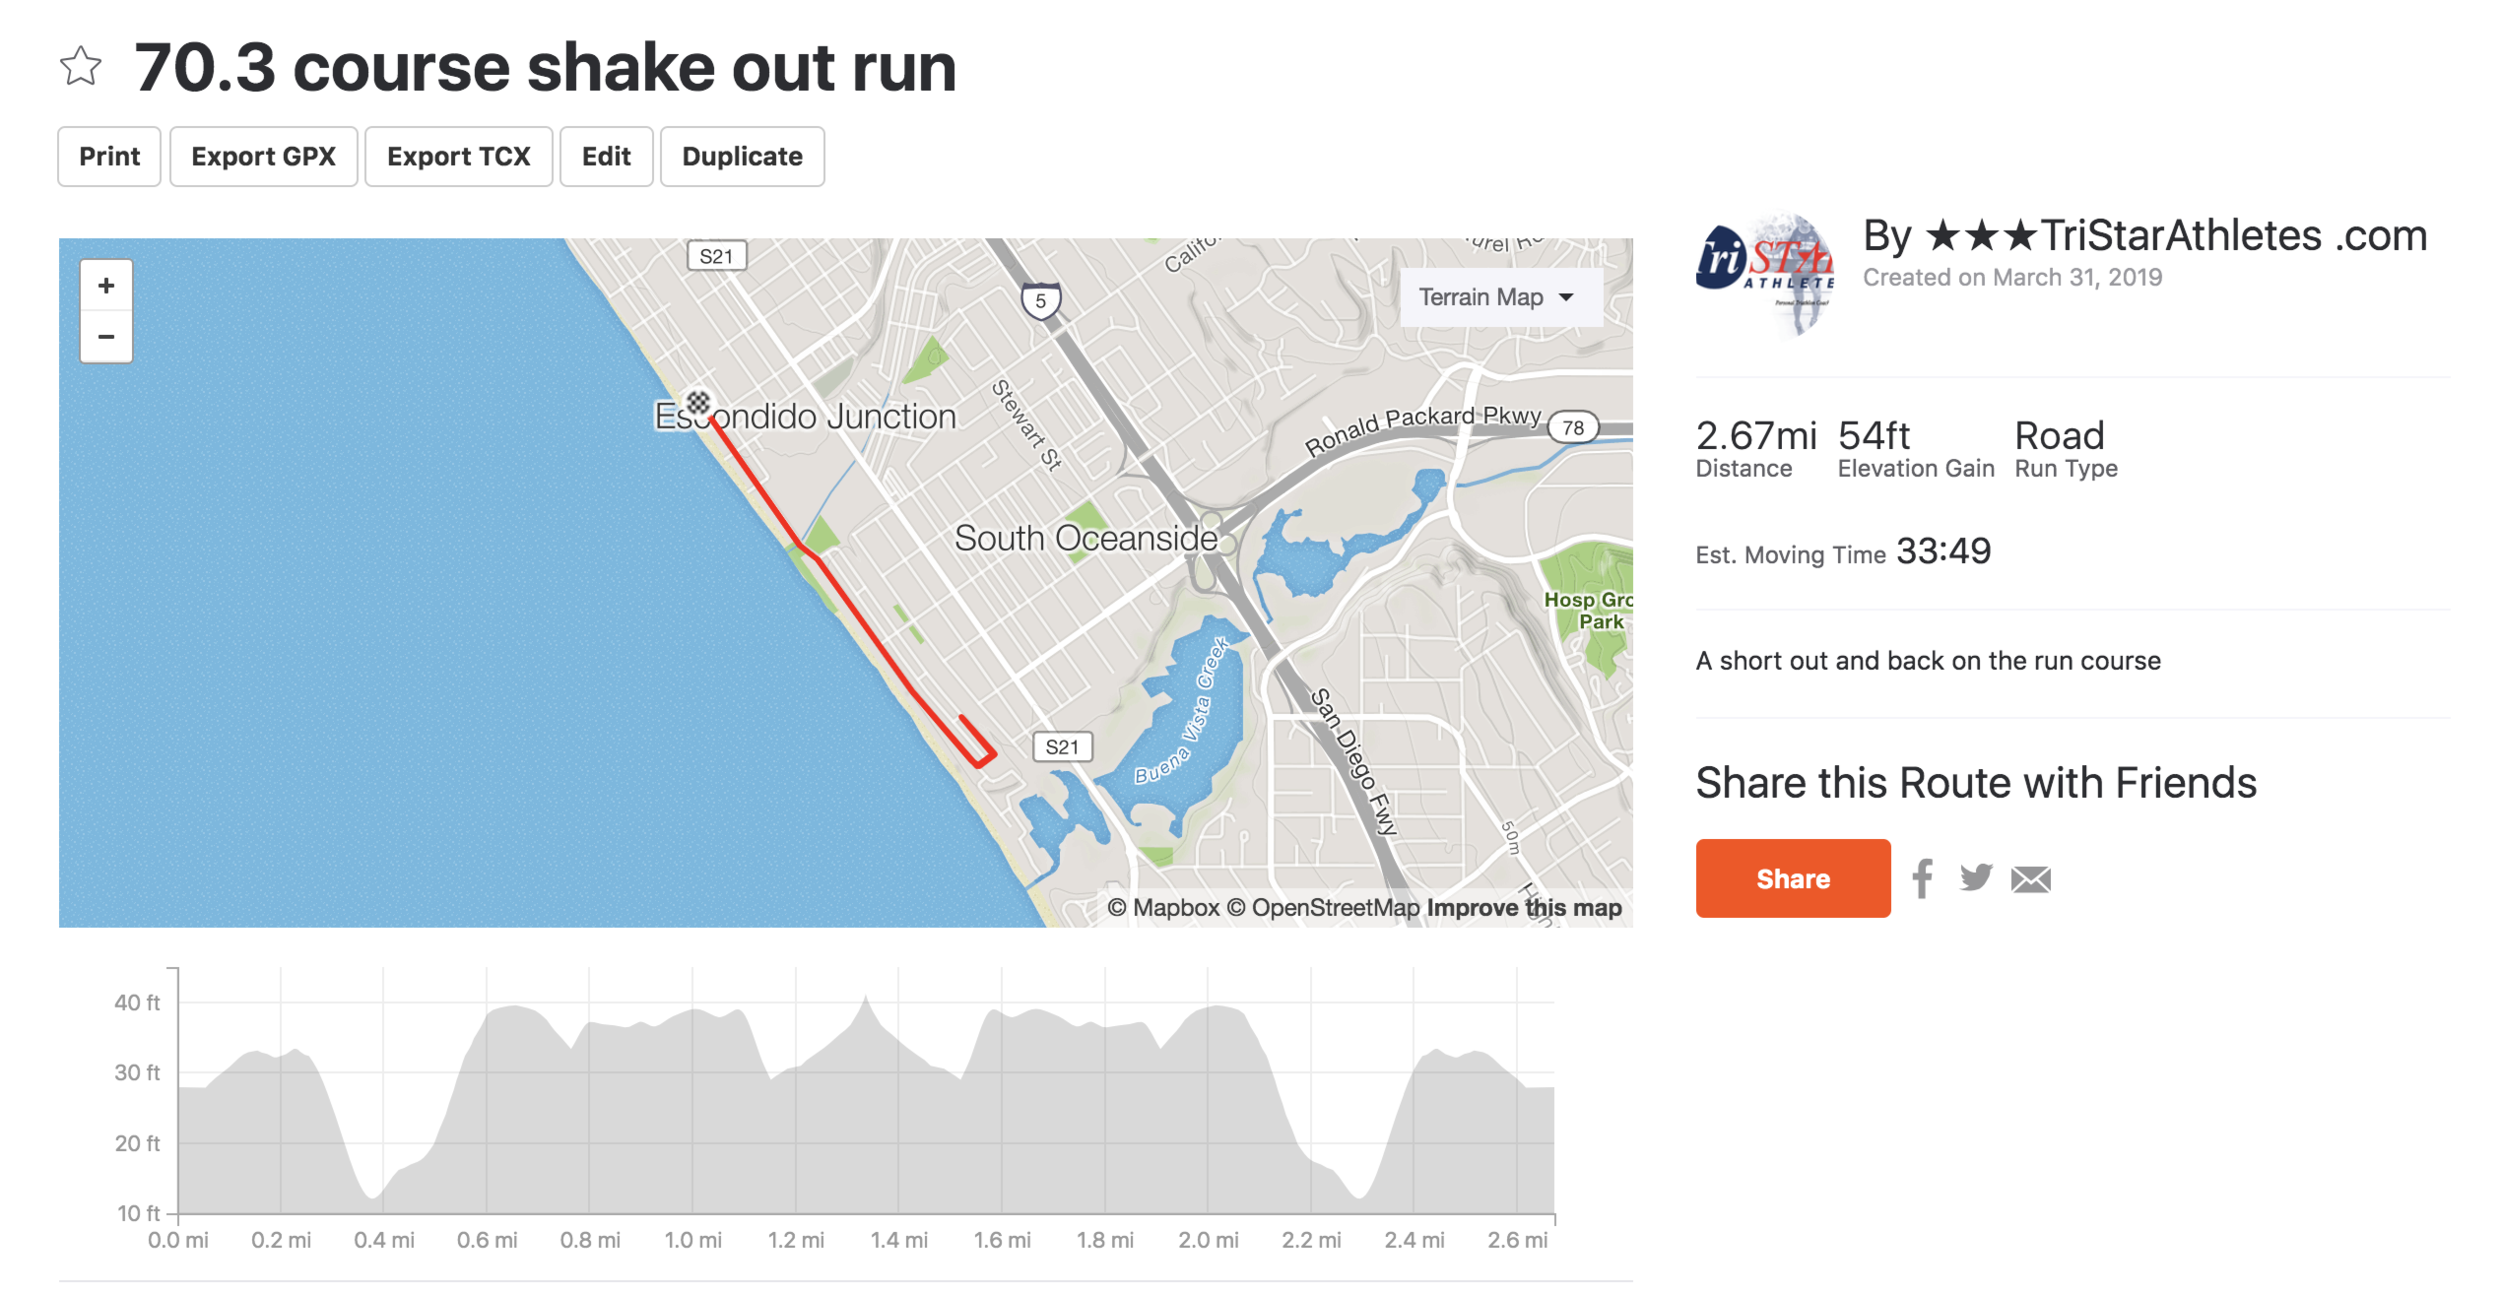 Short run on course - Travel day shake out run